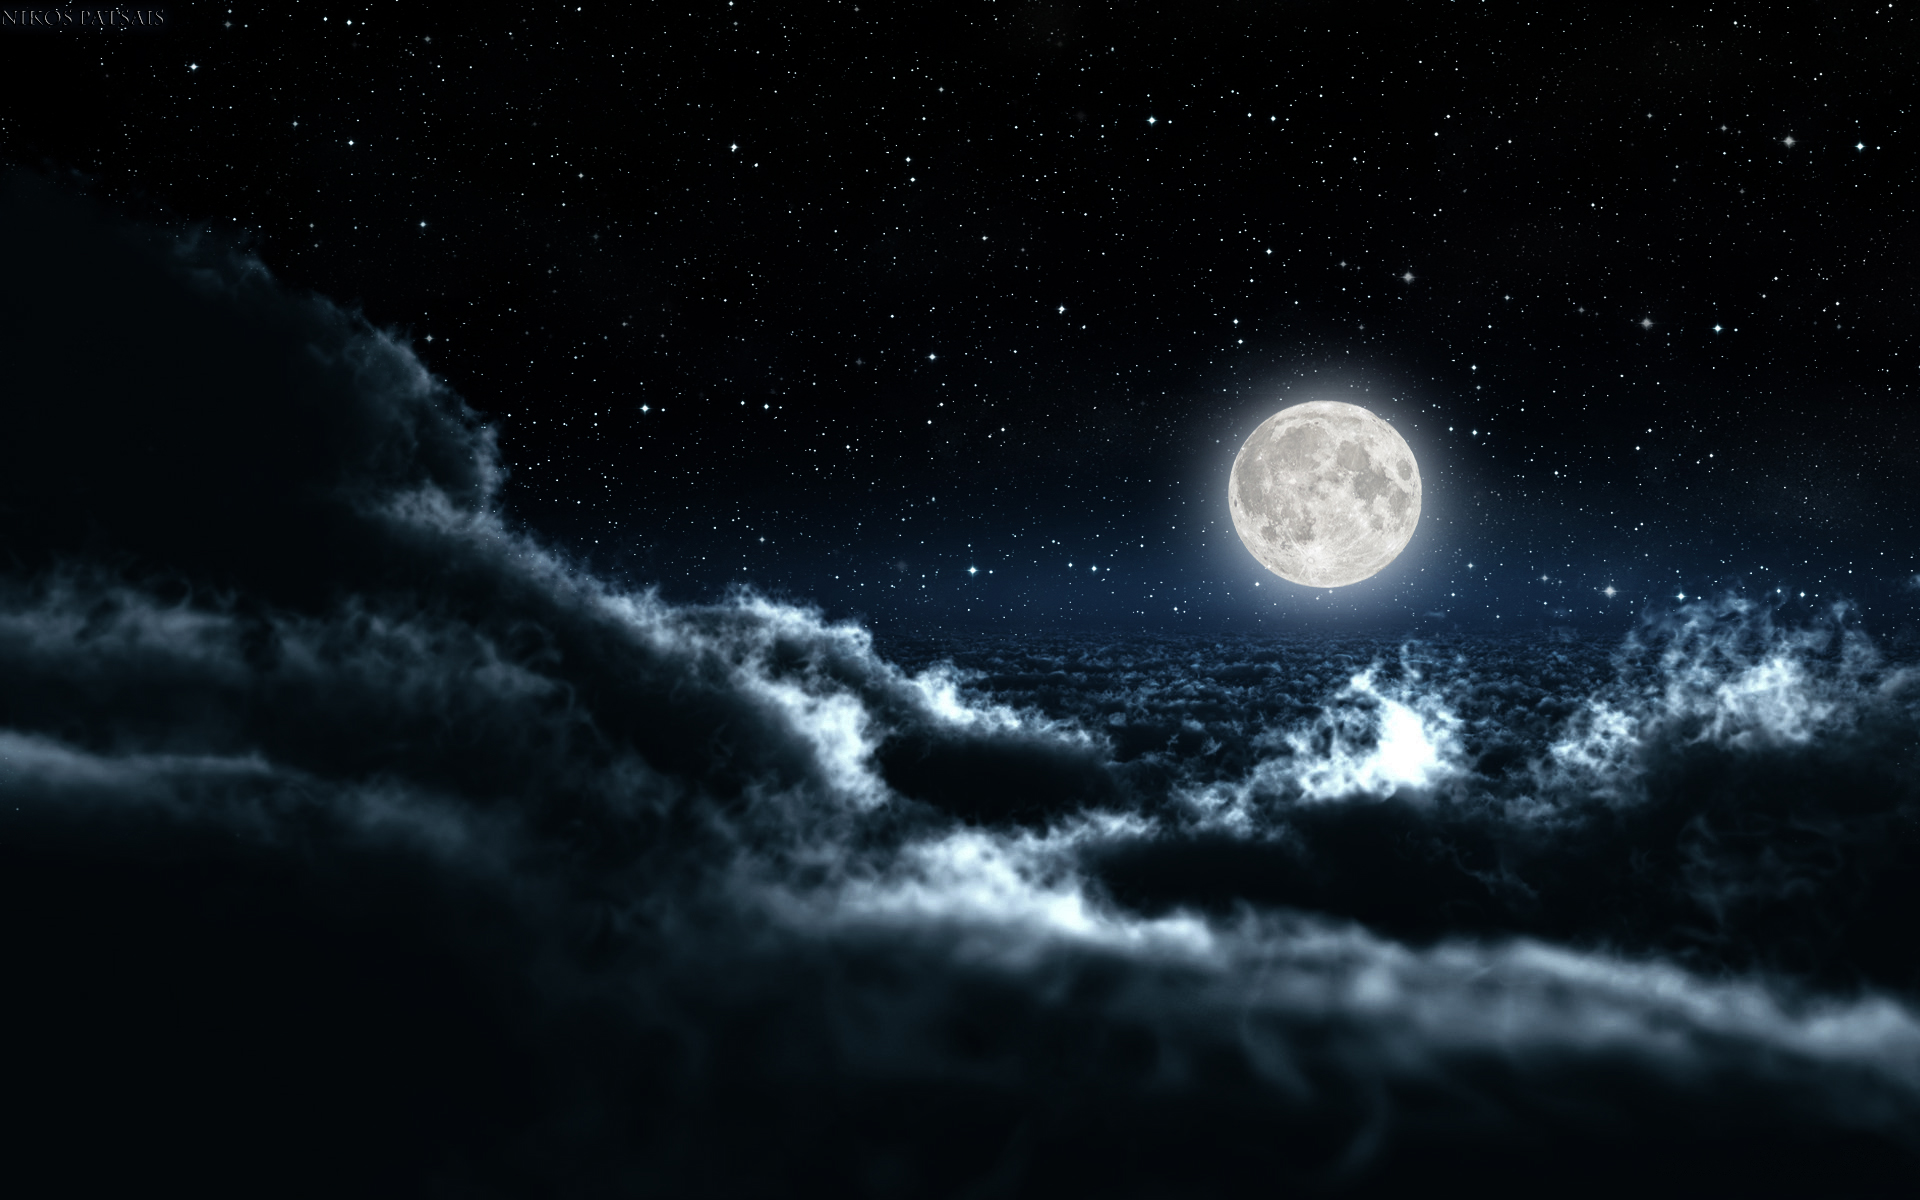 night-sky-wallpaper-18.jpg